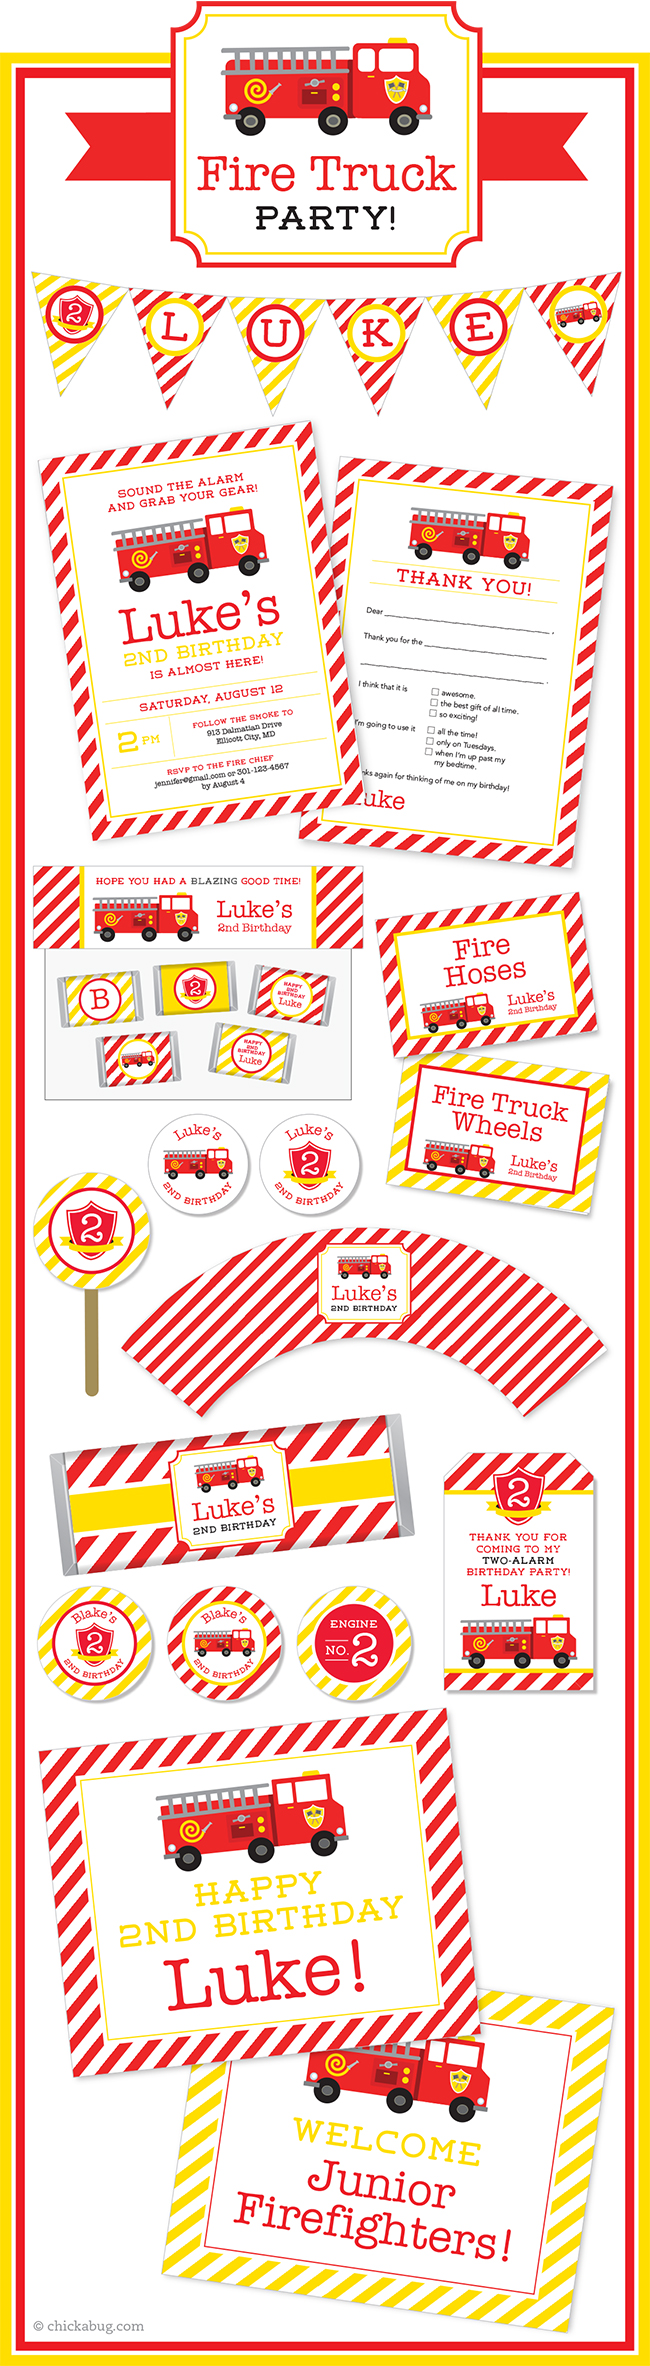 Fire truck theme party paper goods & printables from Chickabug! Super cute for a fire truck party! : )